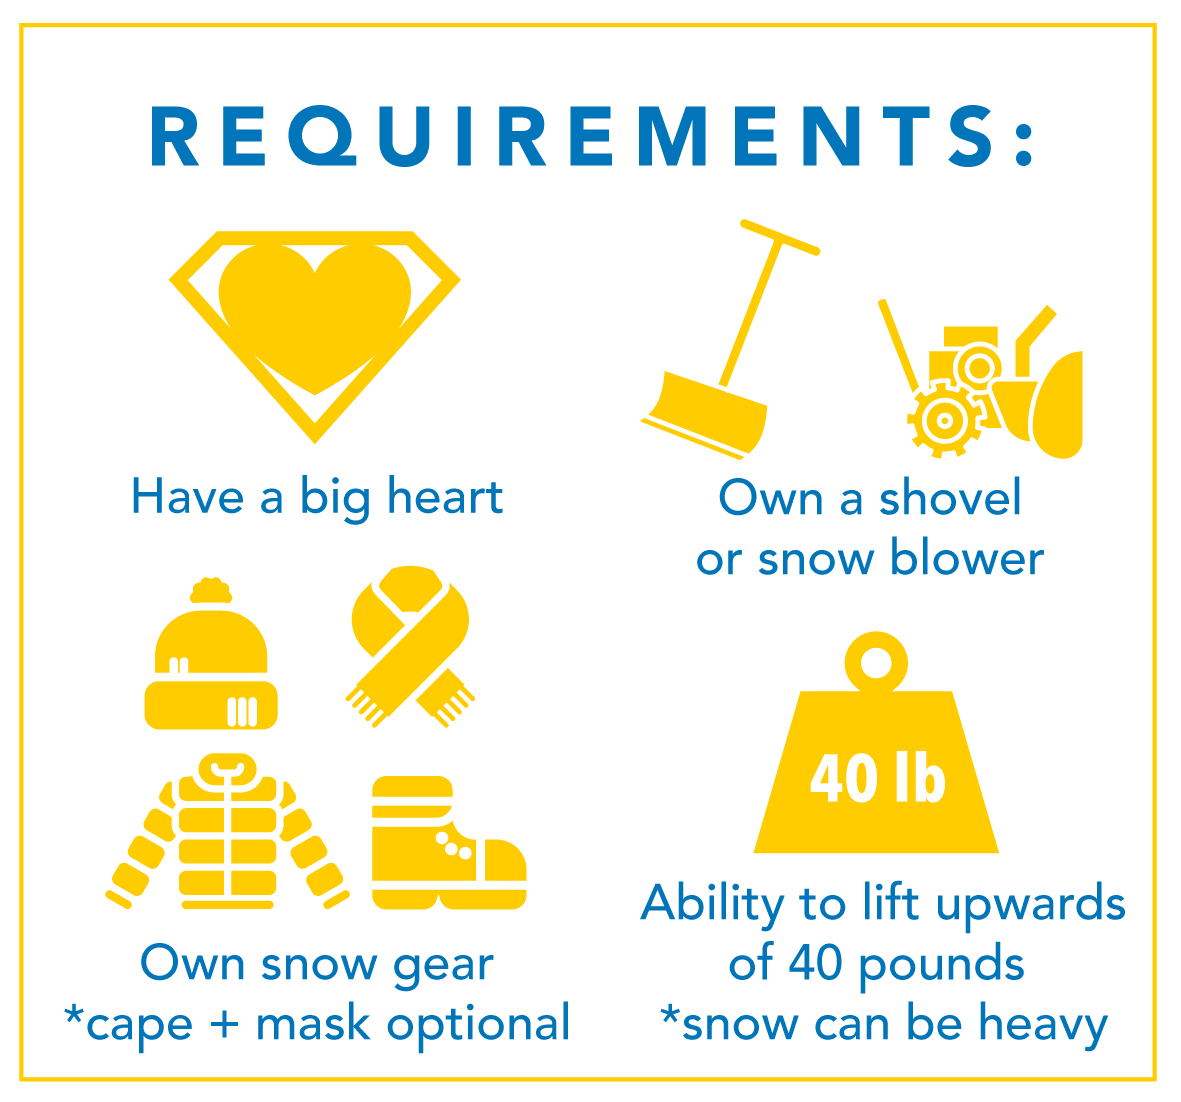 Sidewalk Heroes Requirements graphic